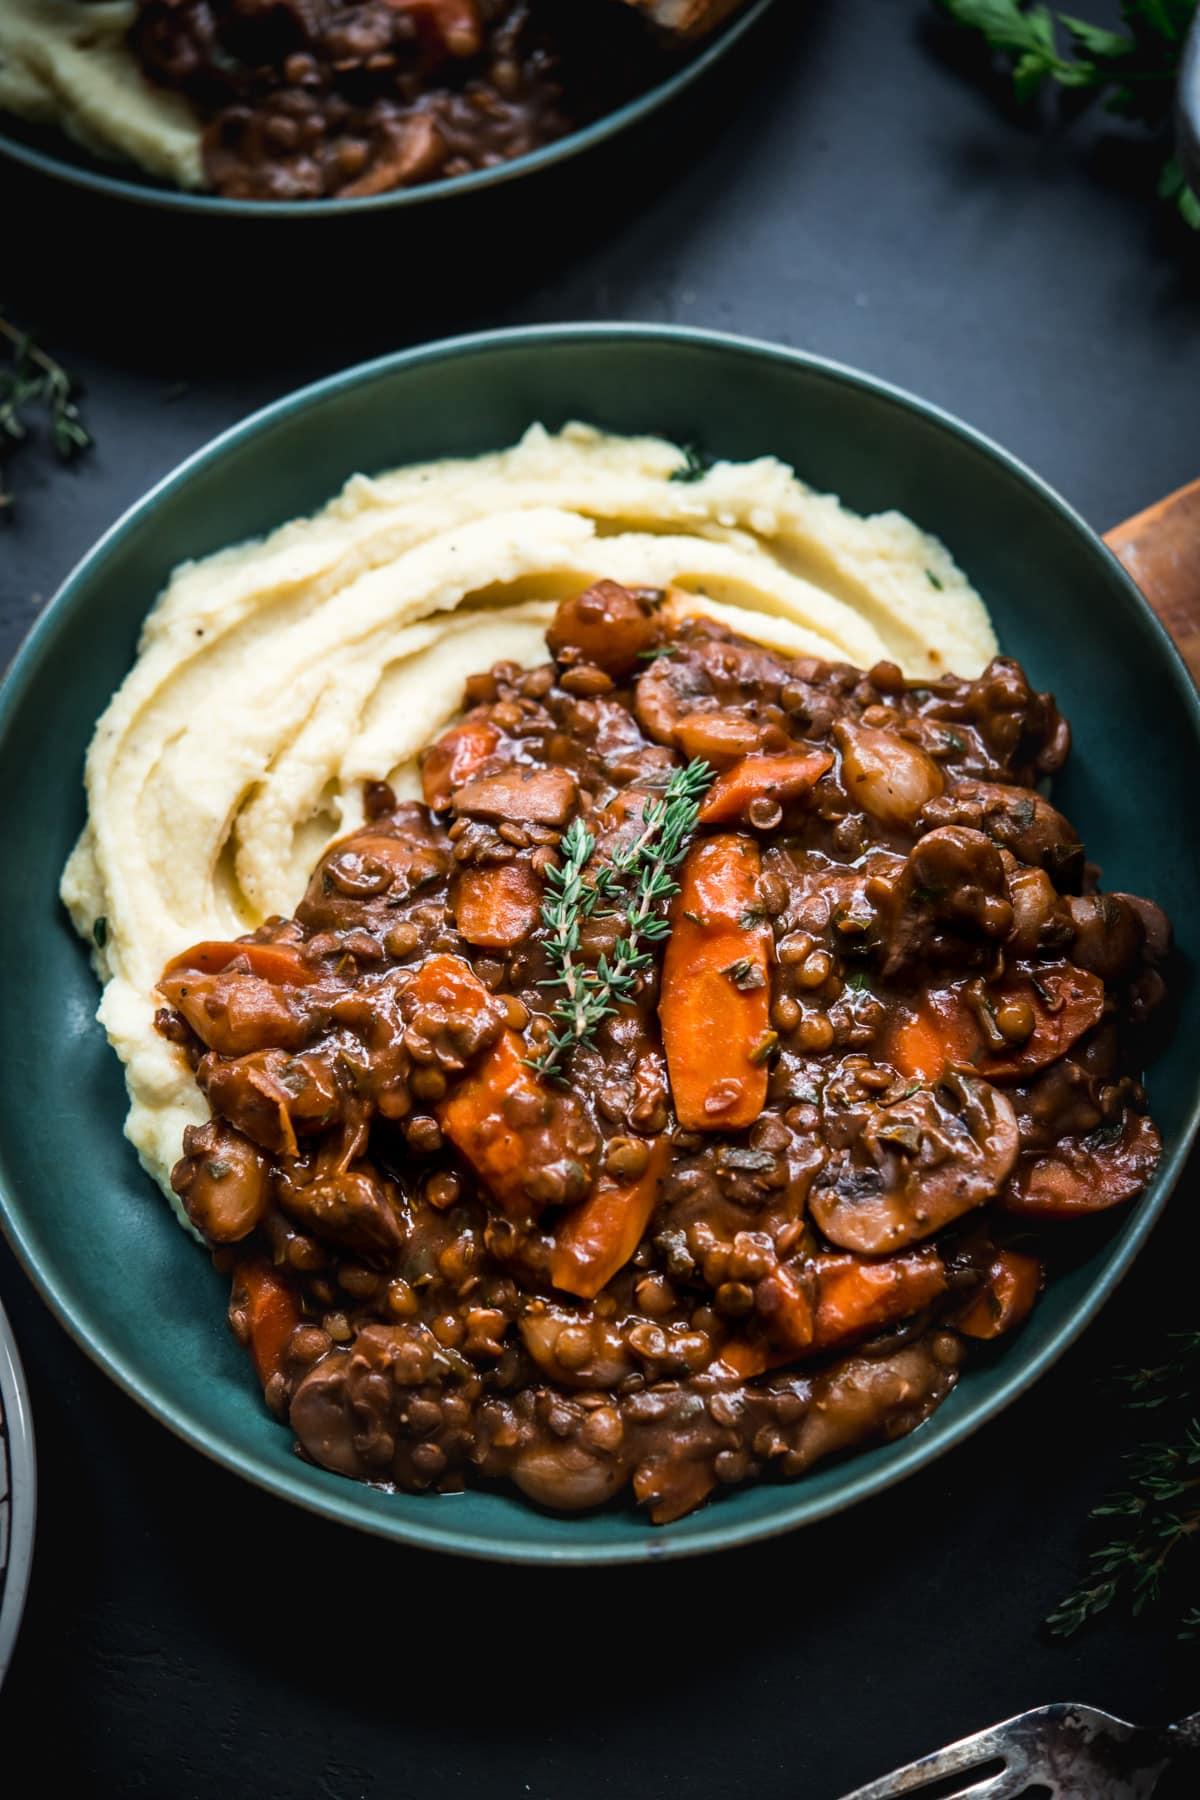 close up view of vegan lentil and mushrooom coq au vin over mashed potatoes in a bowl.